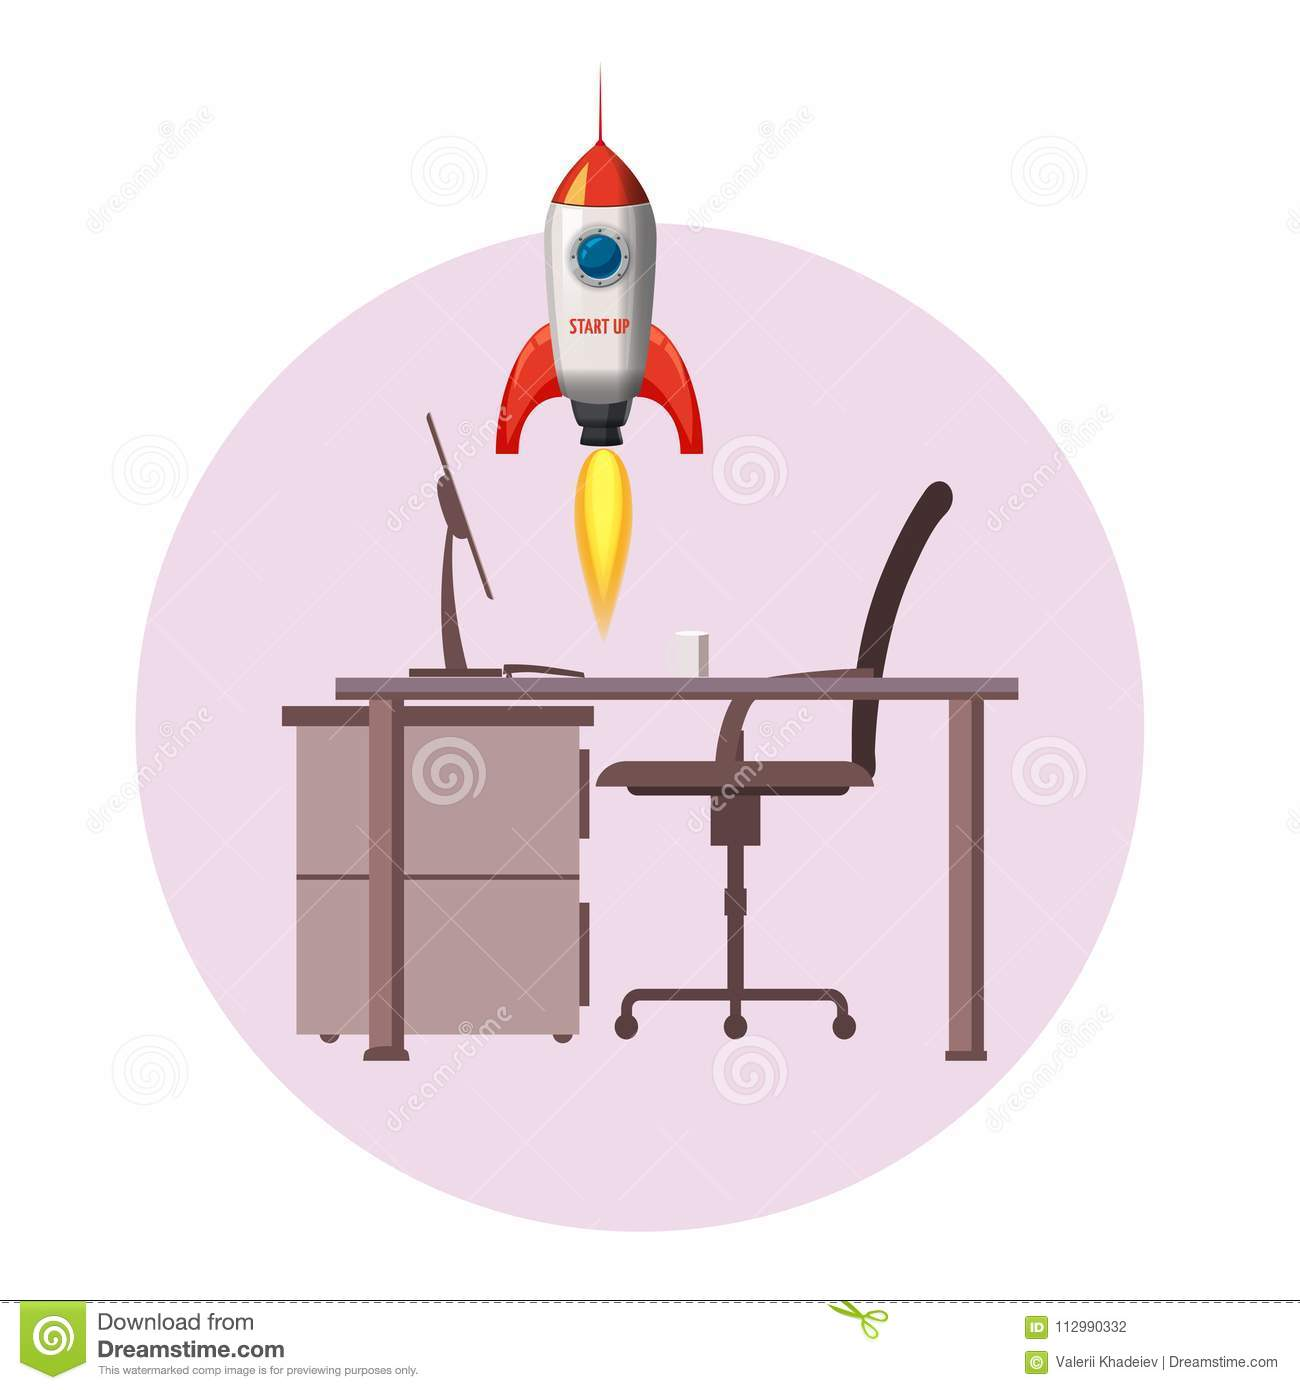 Successful start up, Rocket launch, offise, ship, vector, illustration concept of business product on a market.